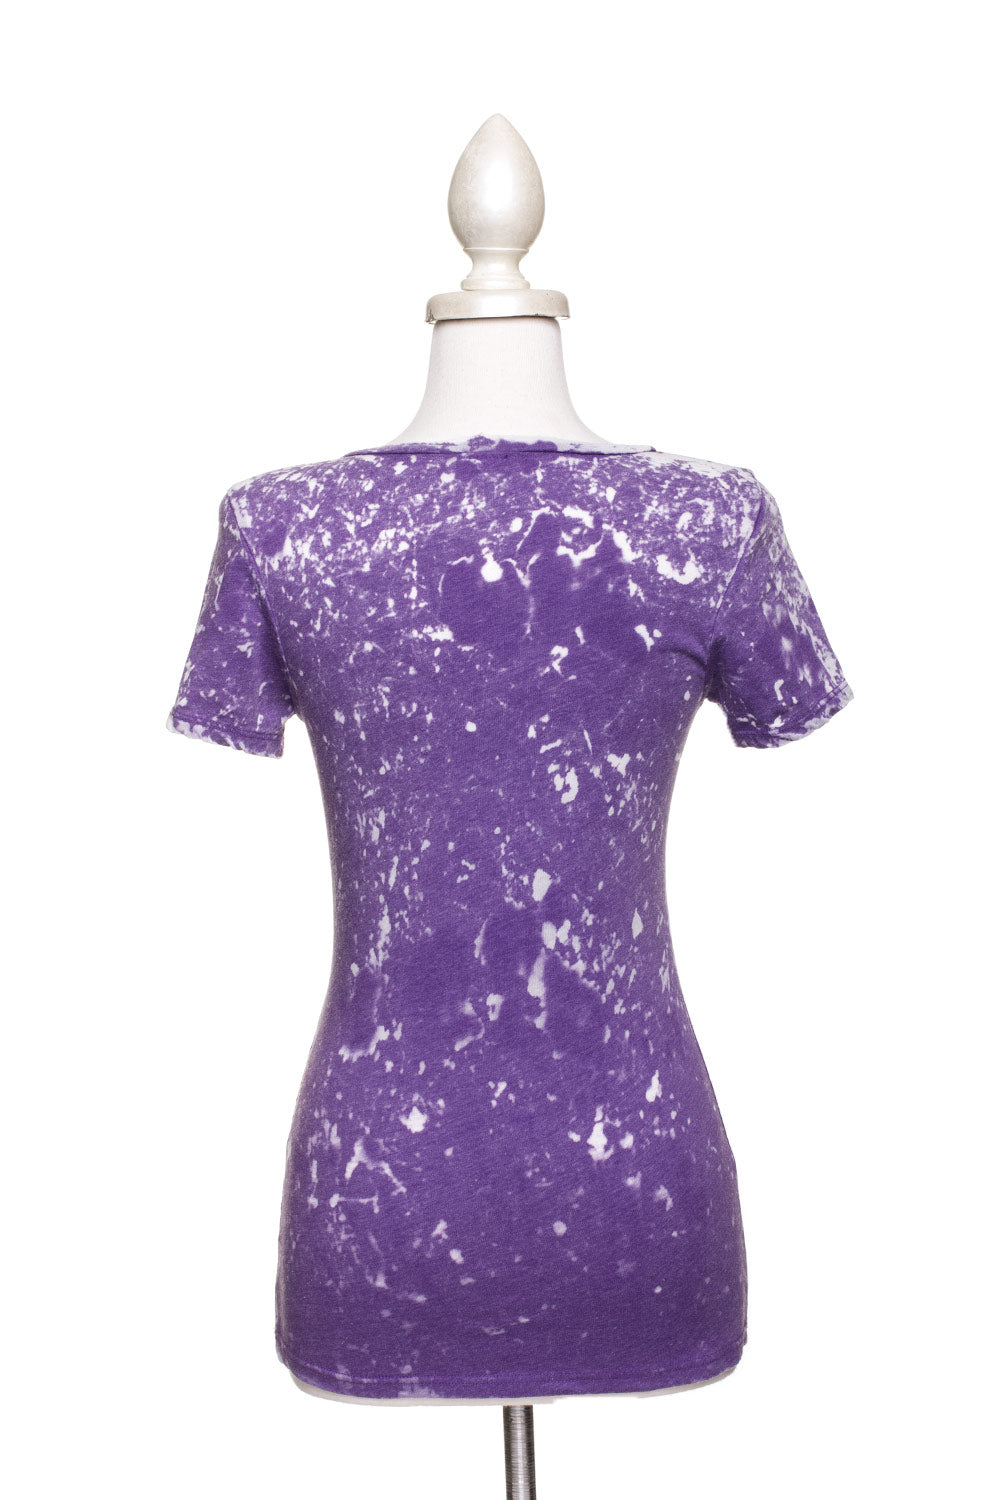 Type 2 Retro Wash Soft-T in Purple